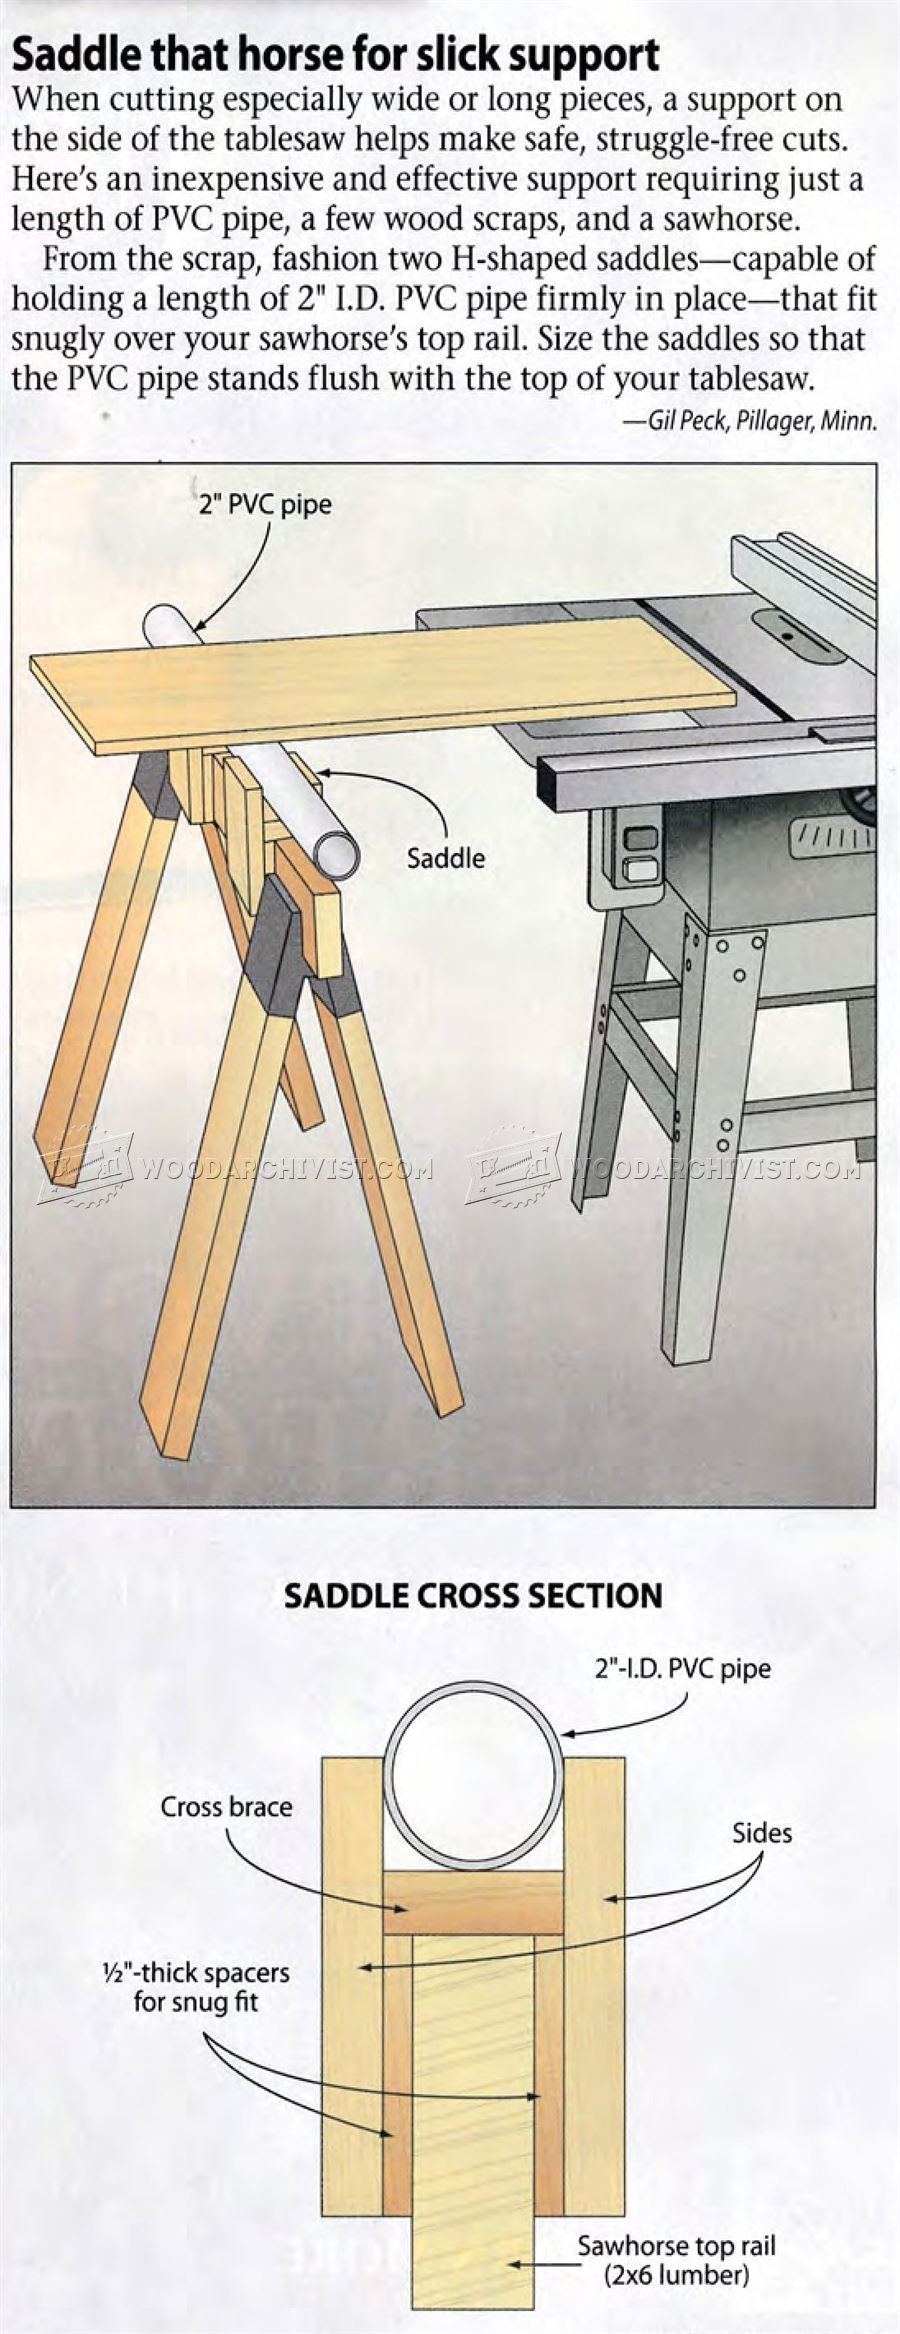 saddle that horse for slick support - table saw tips, jigs